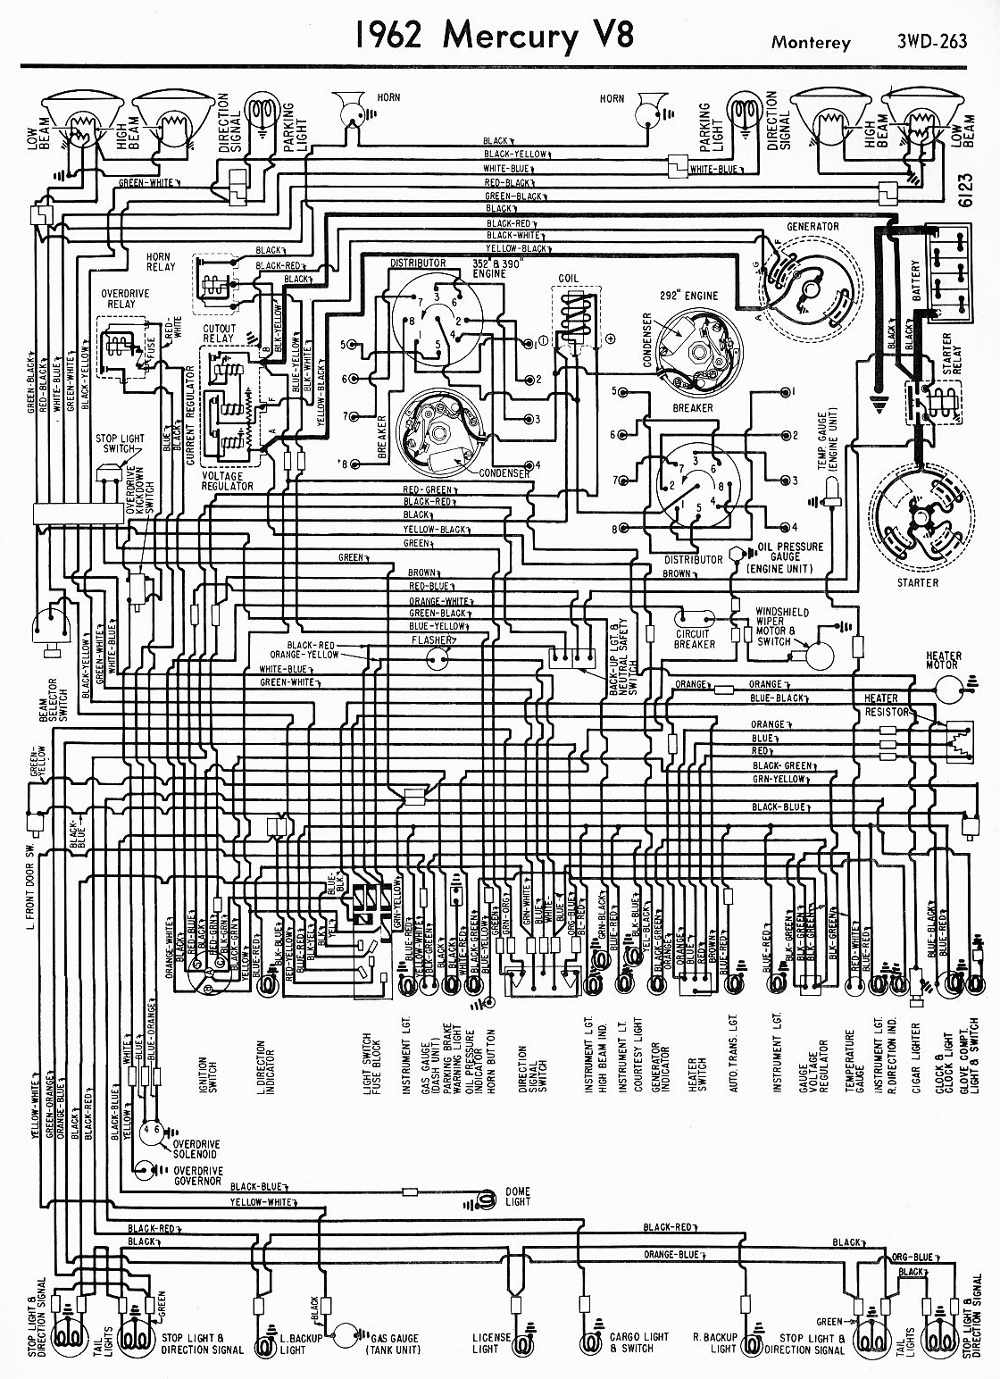 small resolution of 1962 ford galaxie color wiring diagram mercury zephyr 1950 ford wiring diagram wiring diagram ford 1936